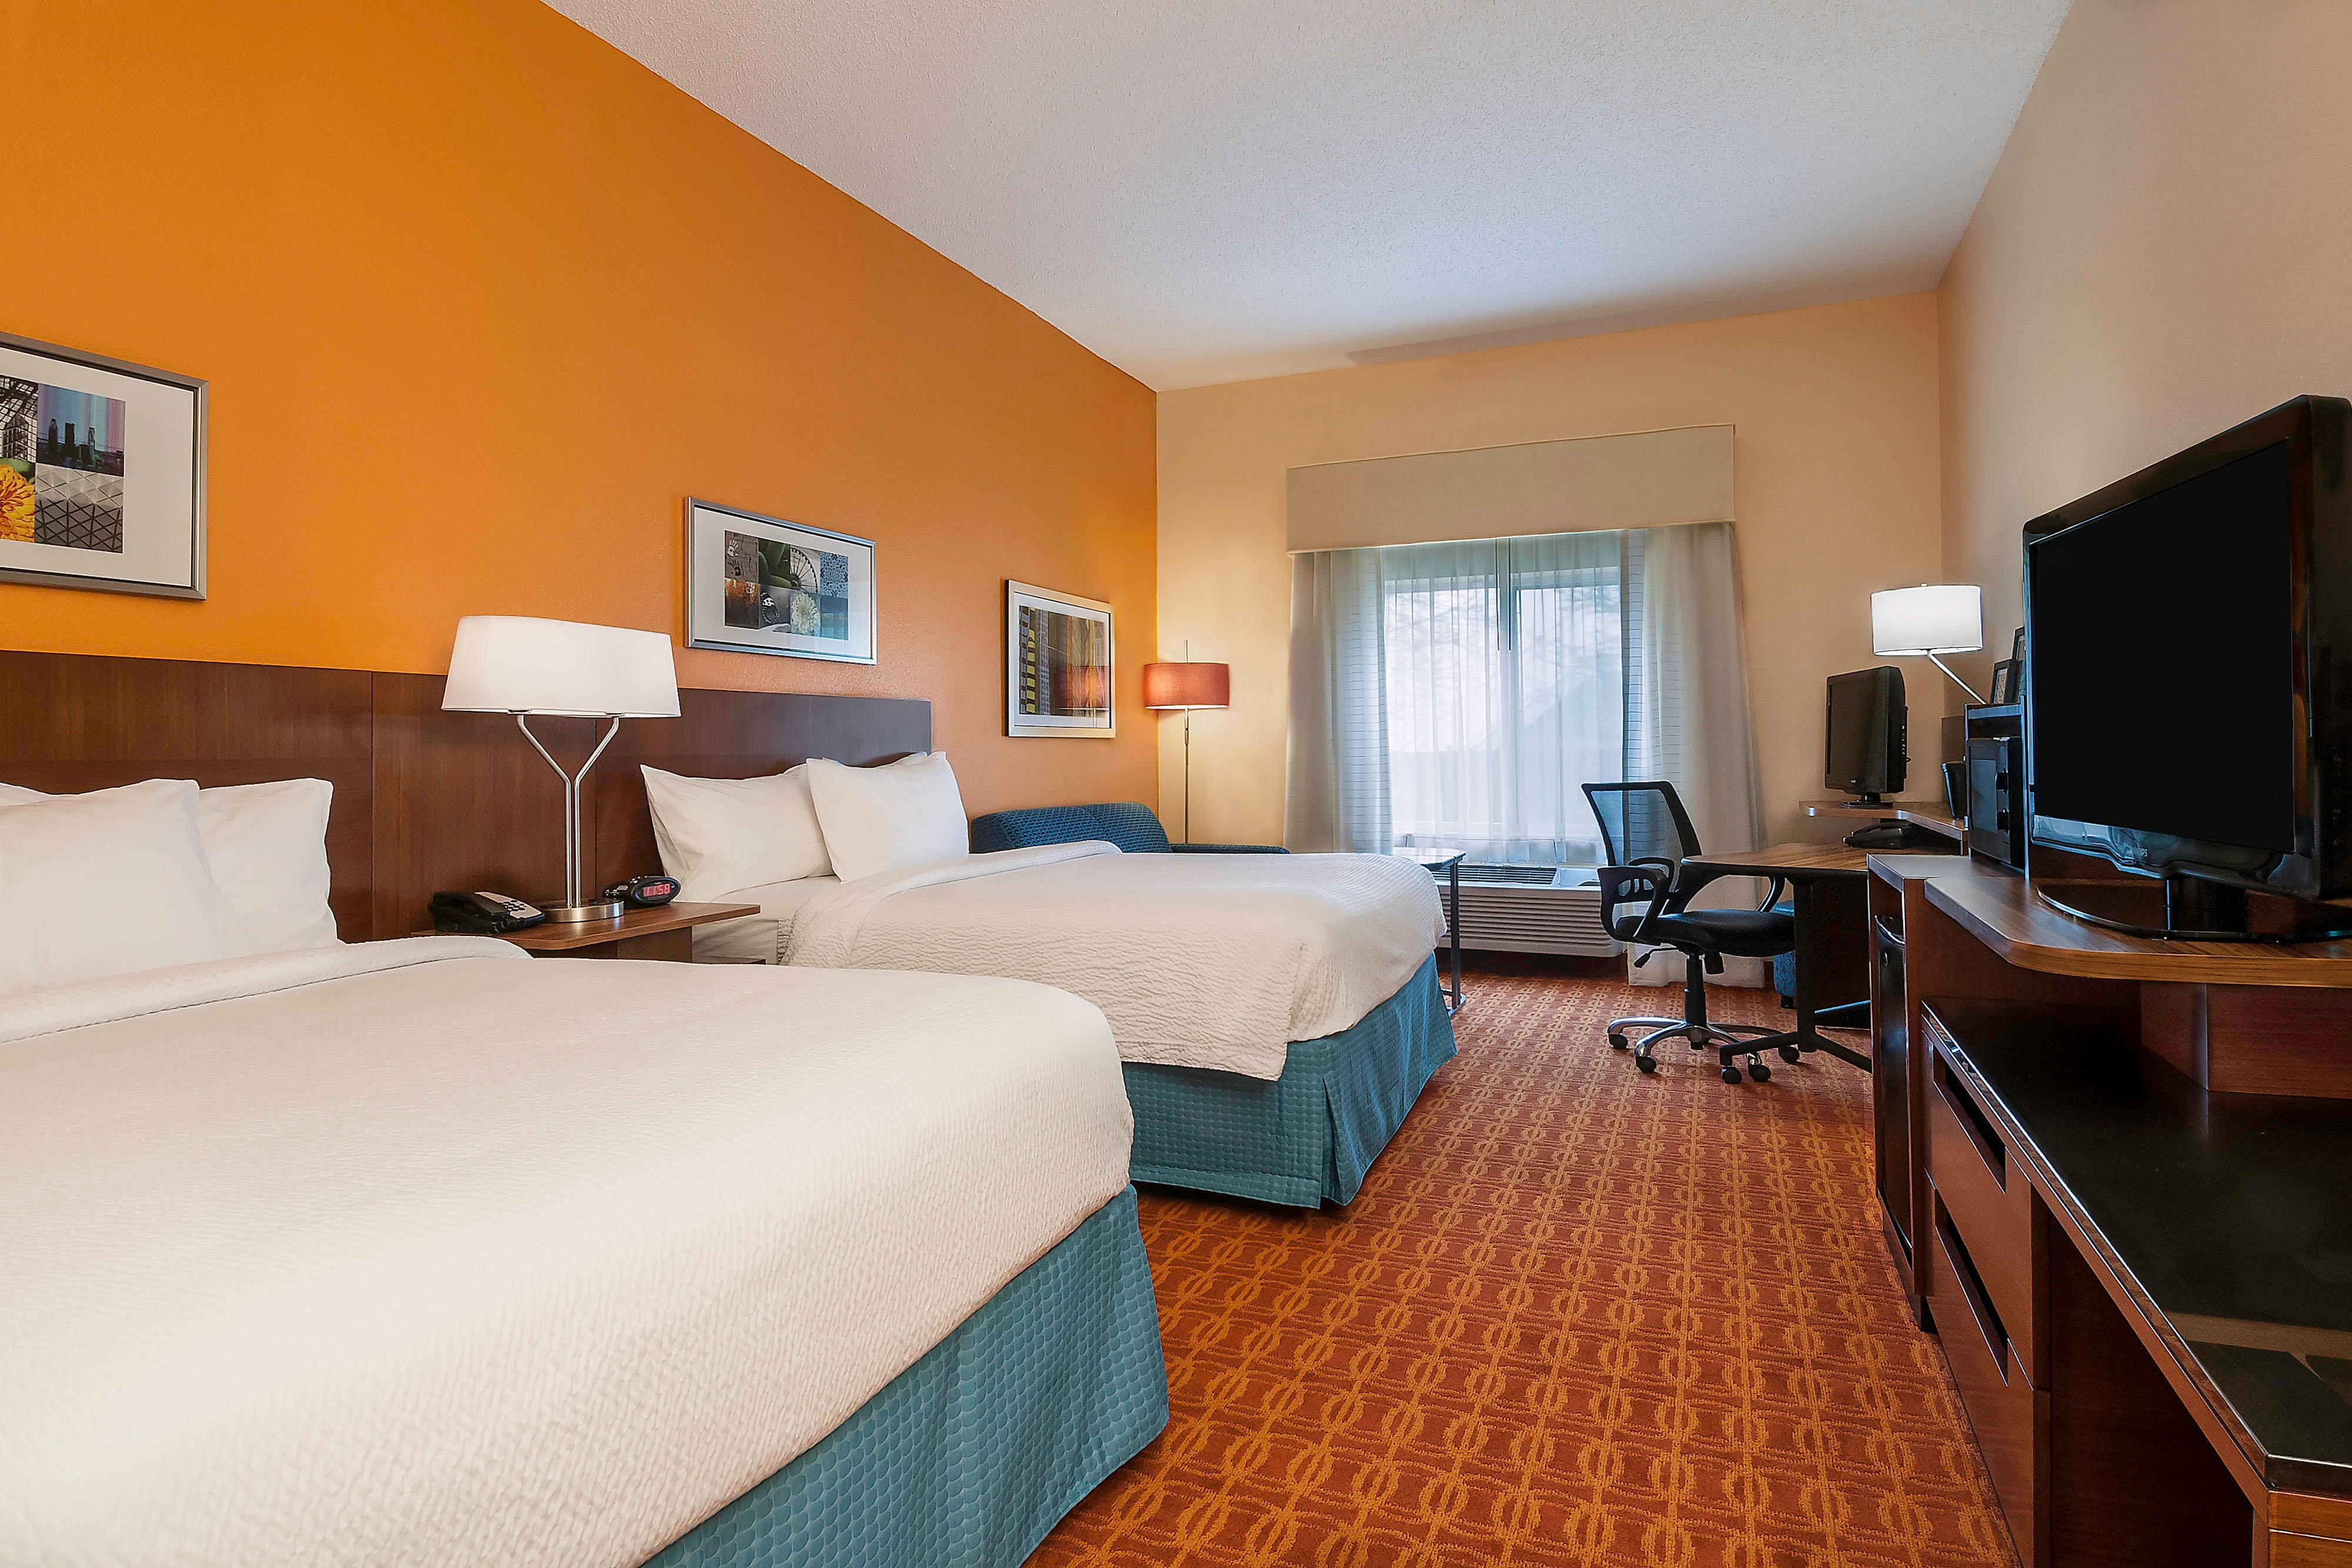 Hotel Rooms In Baton Rouge Louisiana